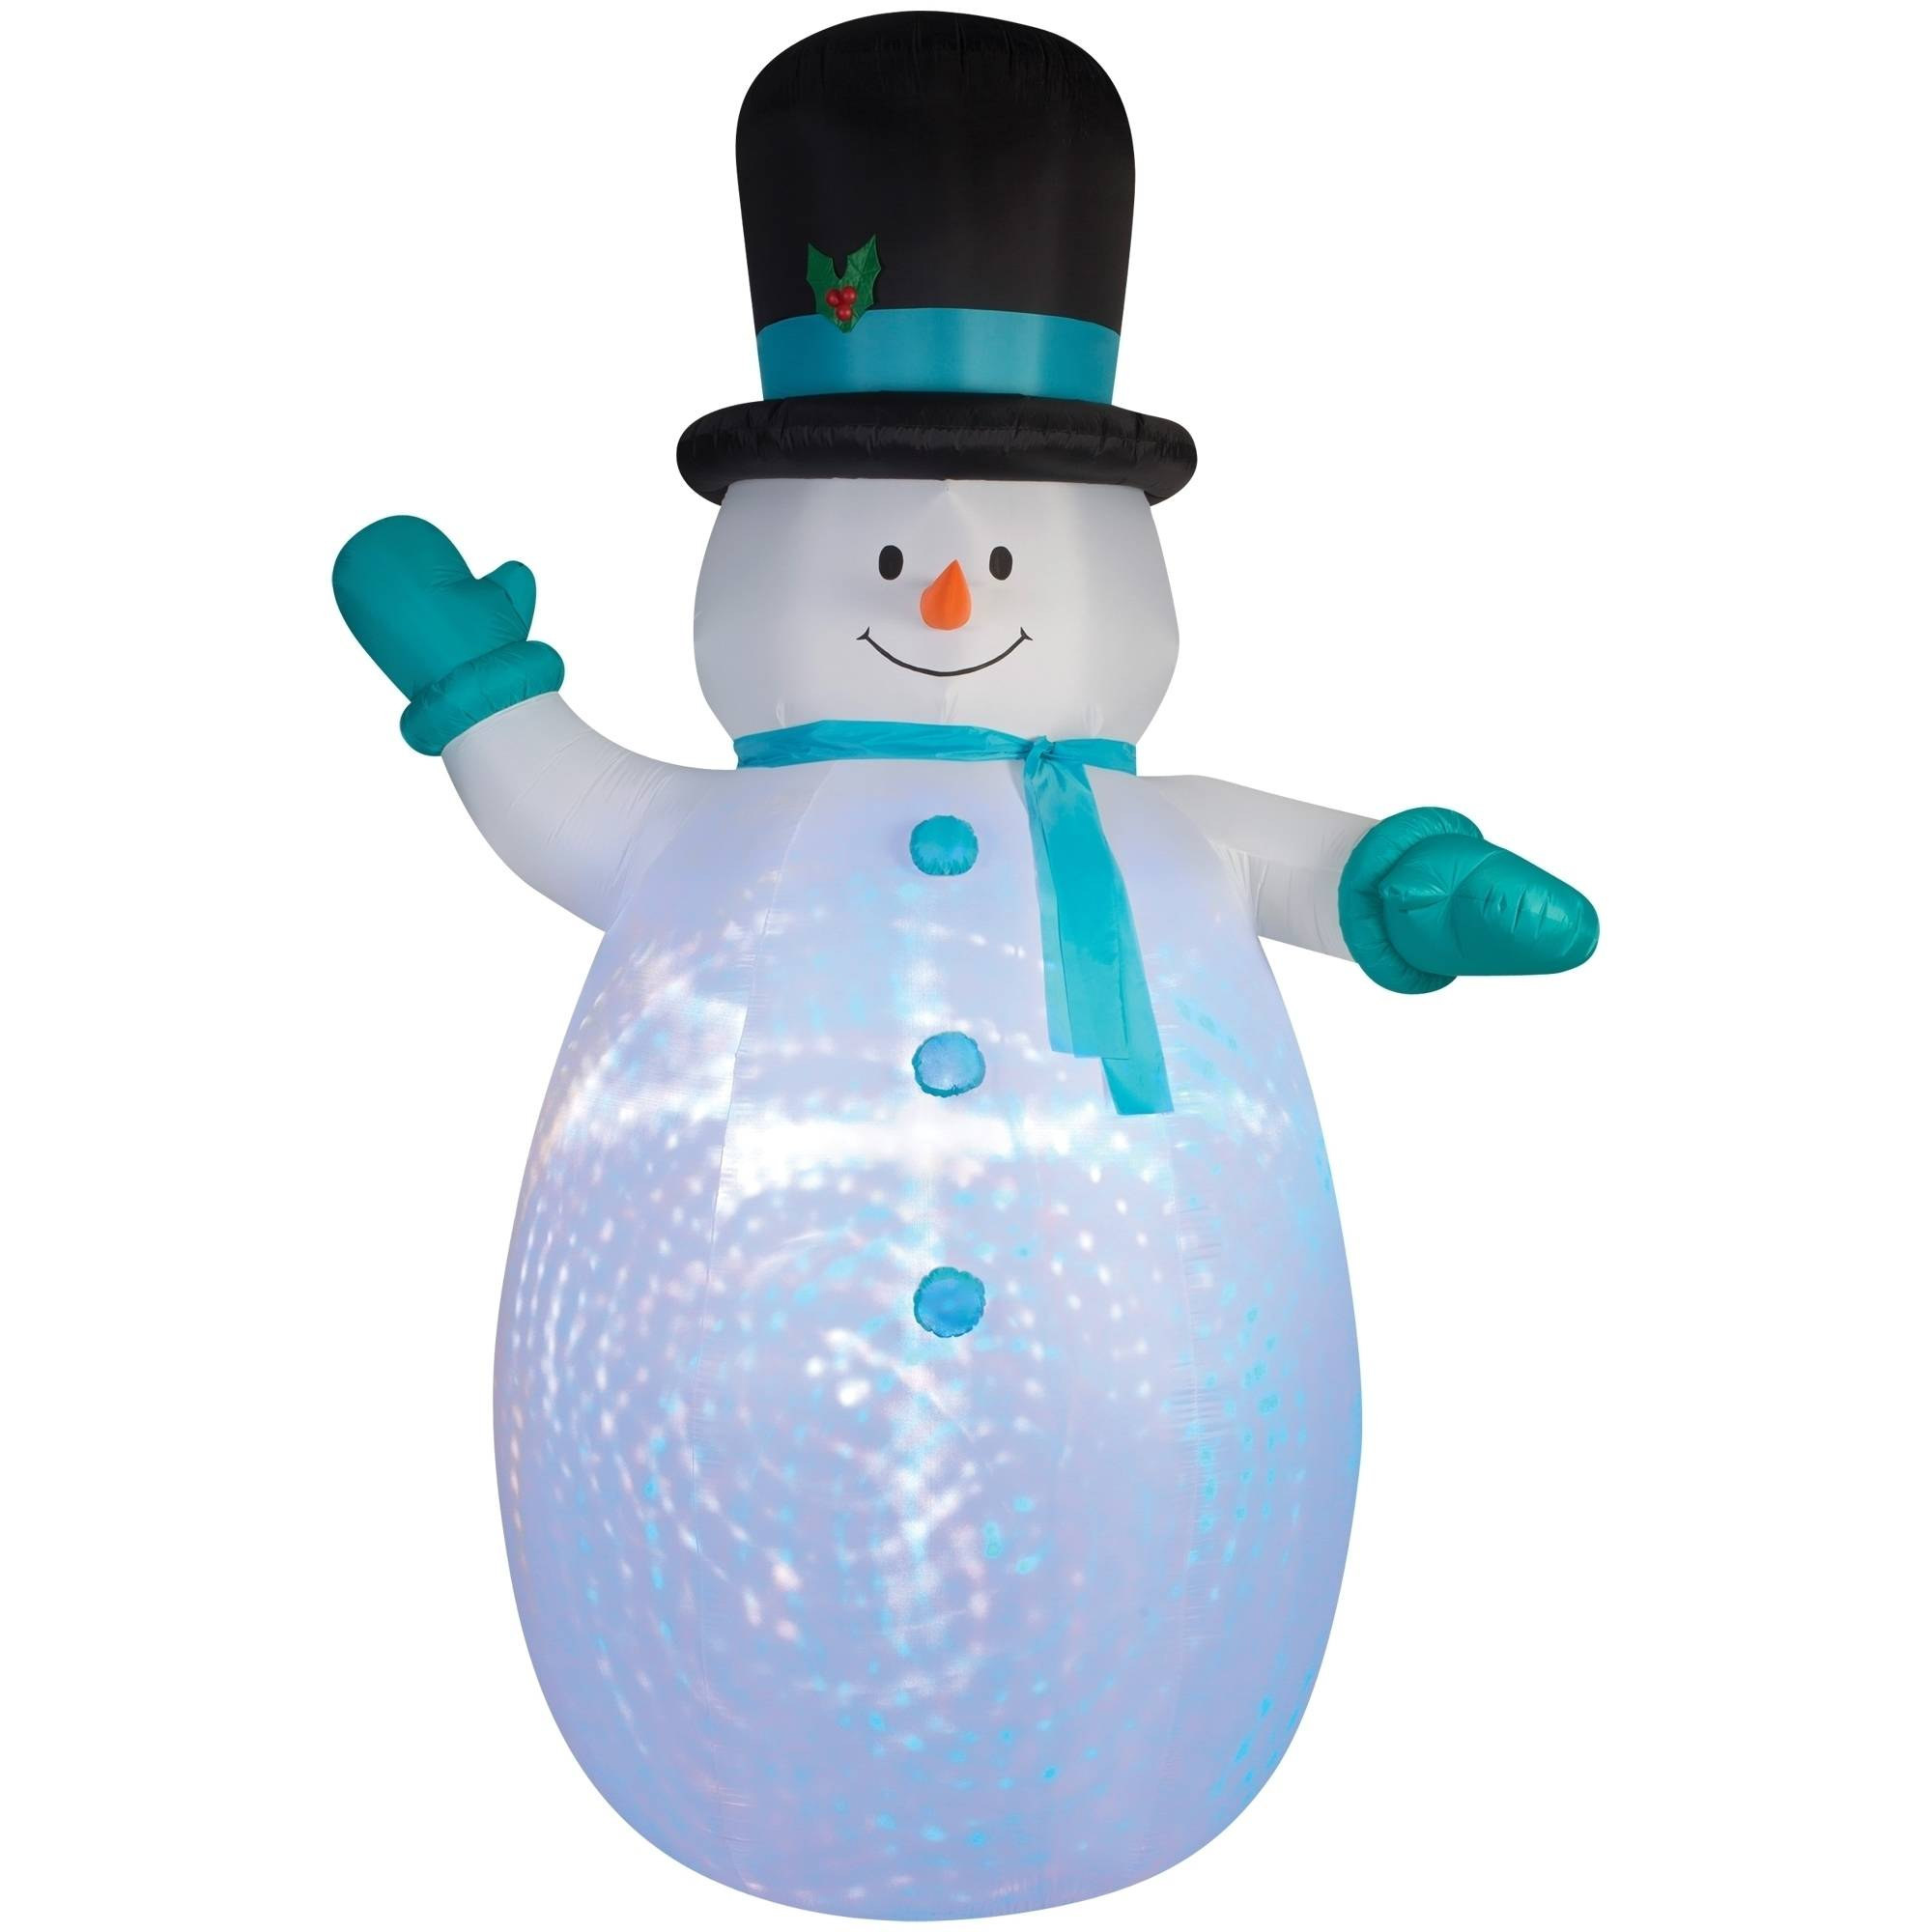 Snowman Swirl Projection Airblown Christmas Decoration